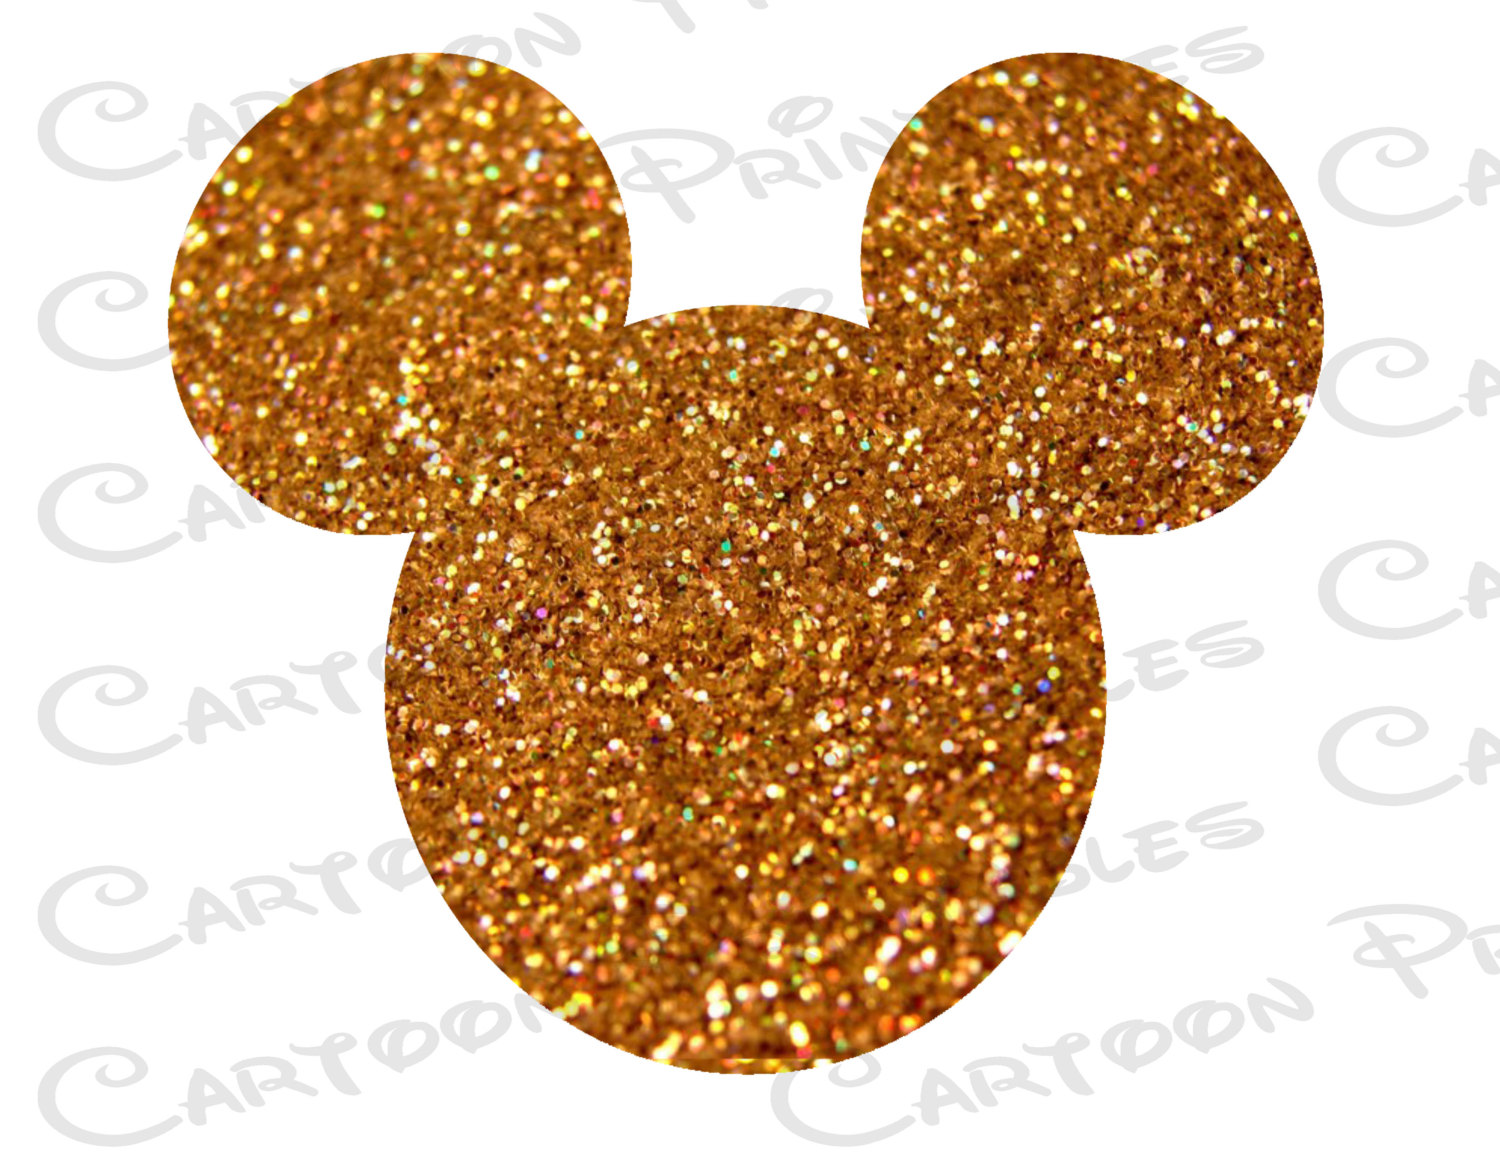 Mickey Mouse Head Gold Glitter Bling IMAGE Mouse Ears.